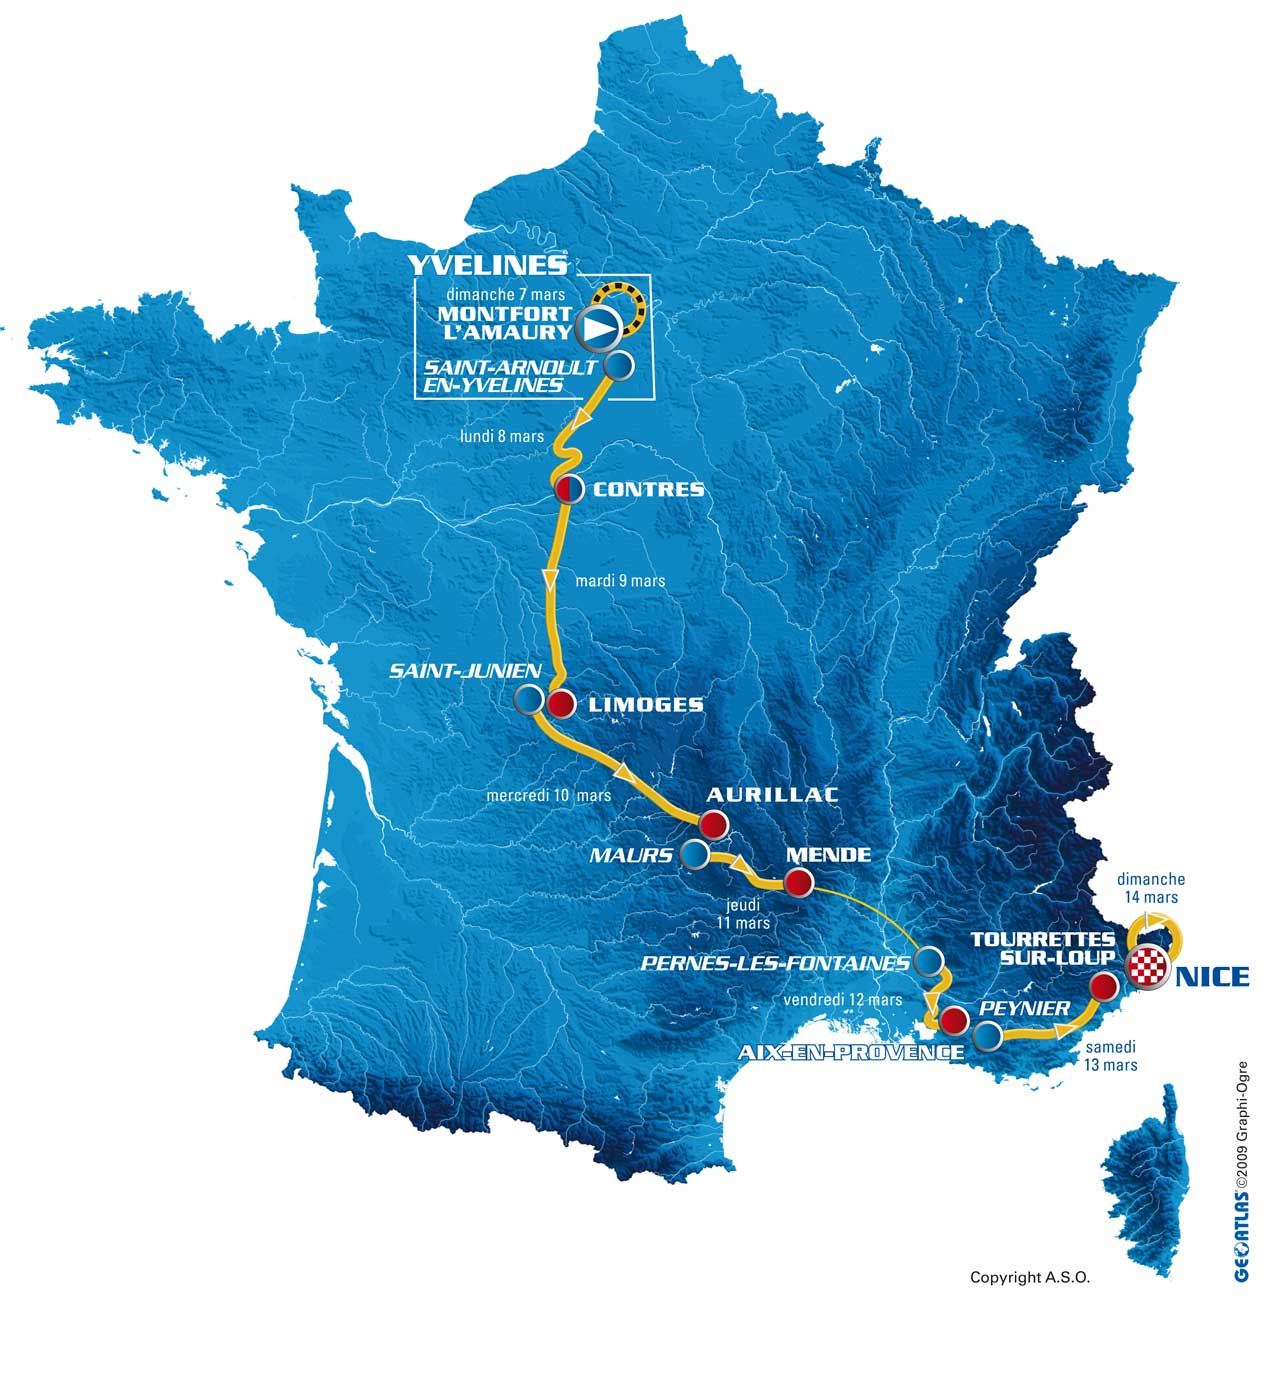 Paris-Nice 2010 route map